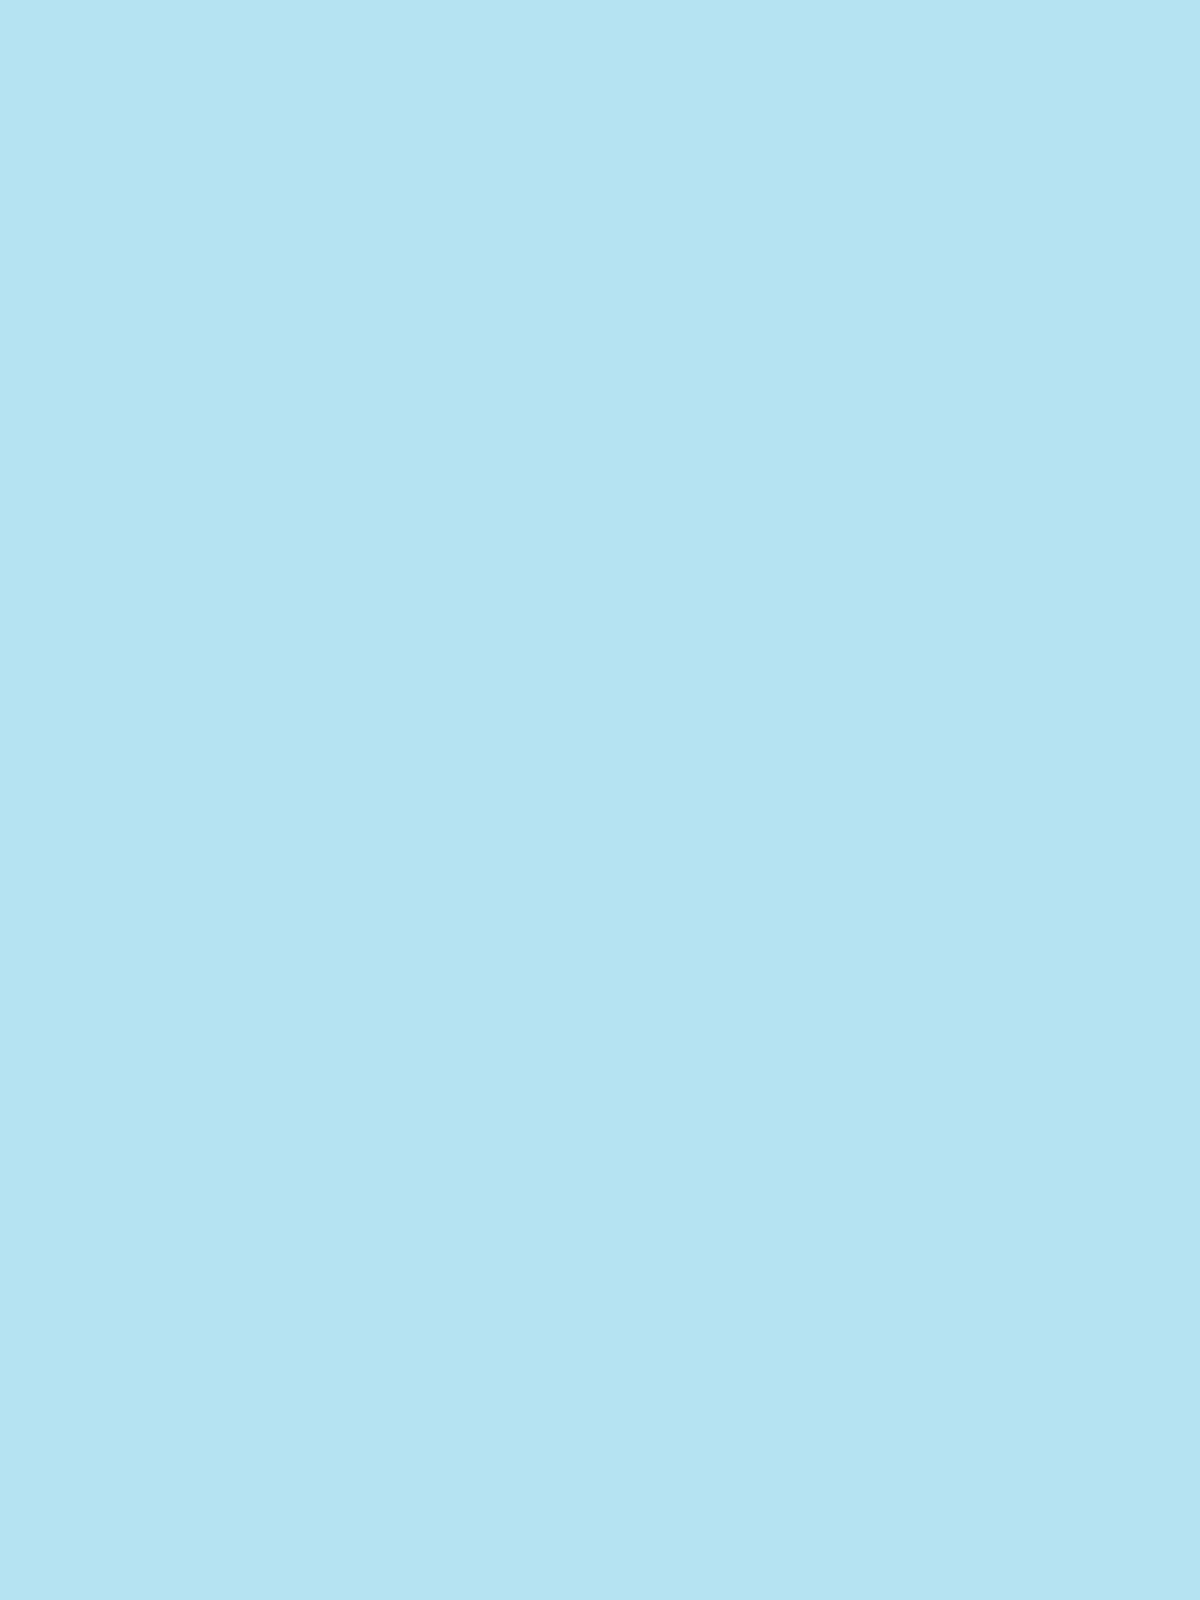 Printables BackgroundsWallpapers Solids Baby Blue Baby Pink 1200x1600